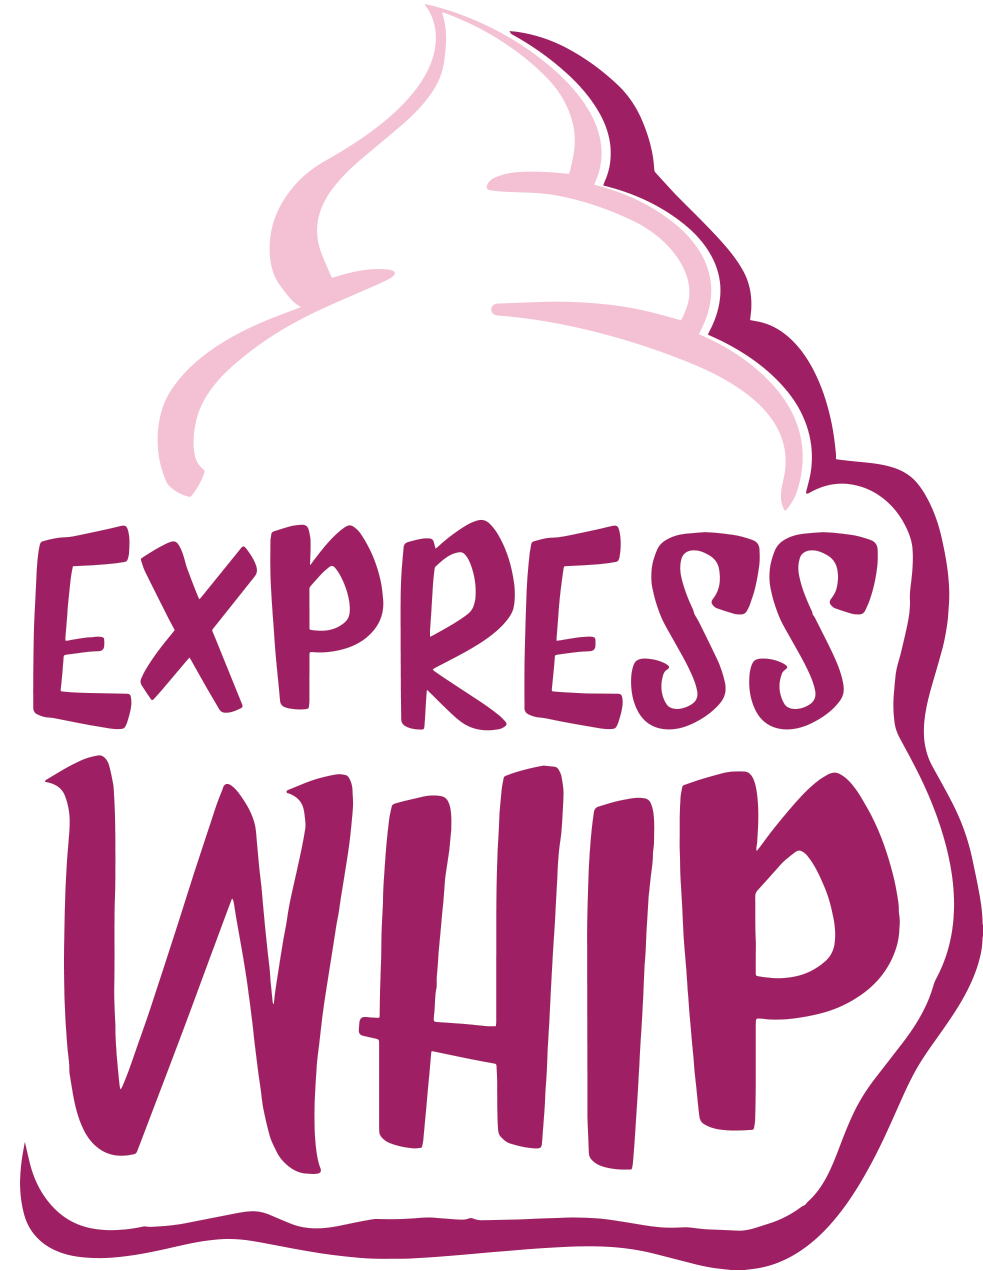 Express cream chargers hour. Whip clipart whipped